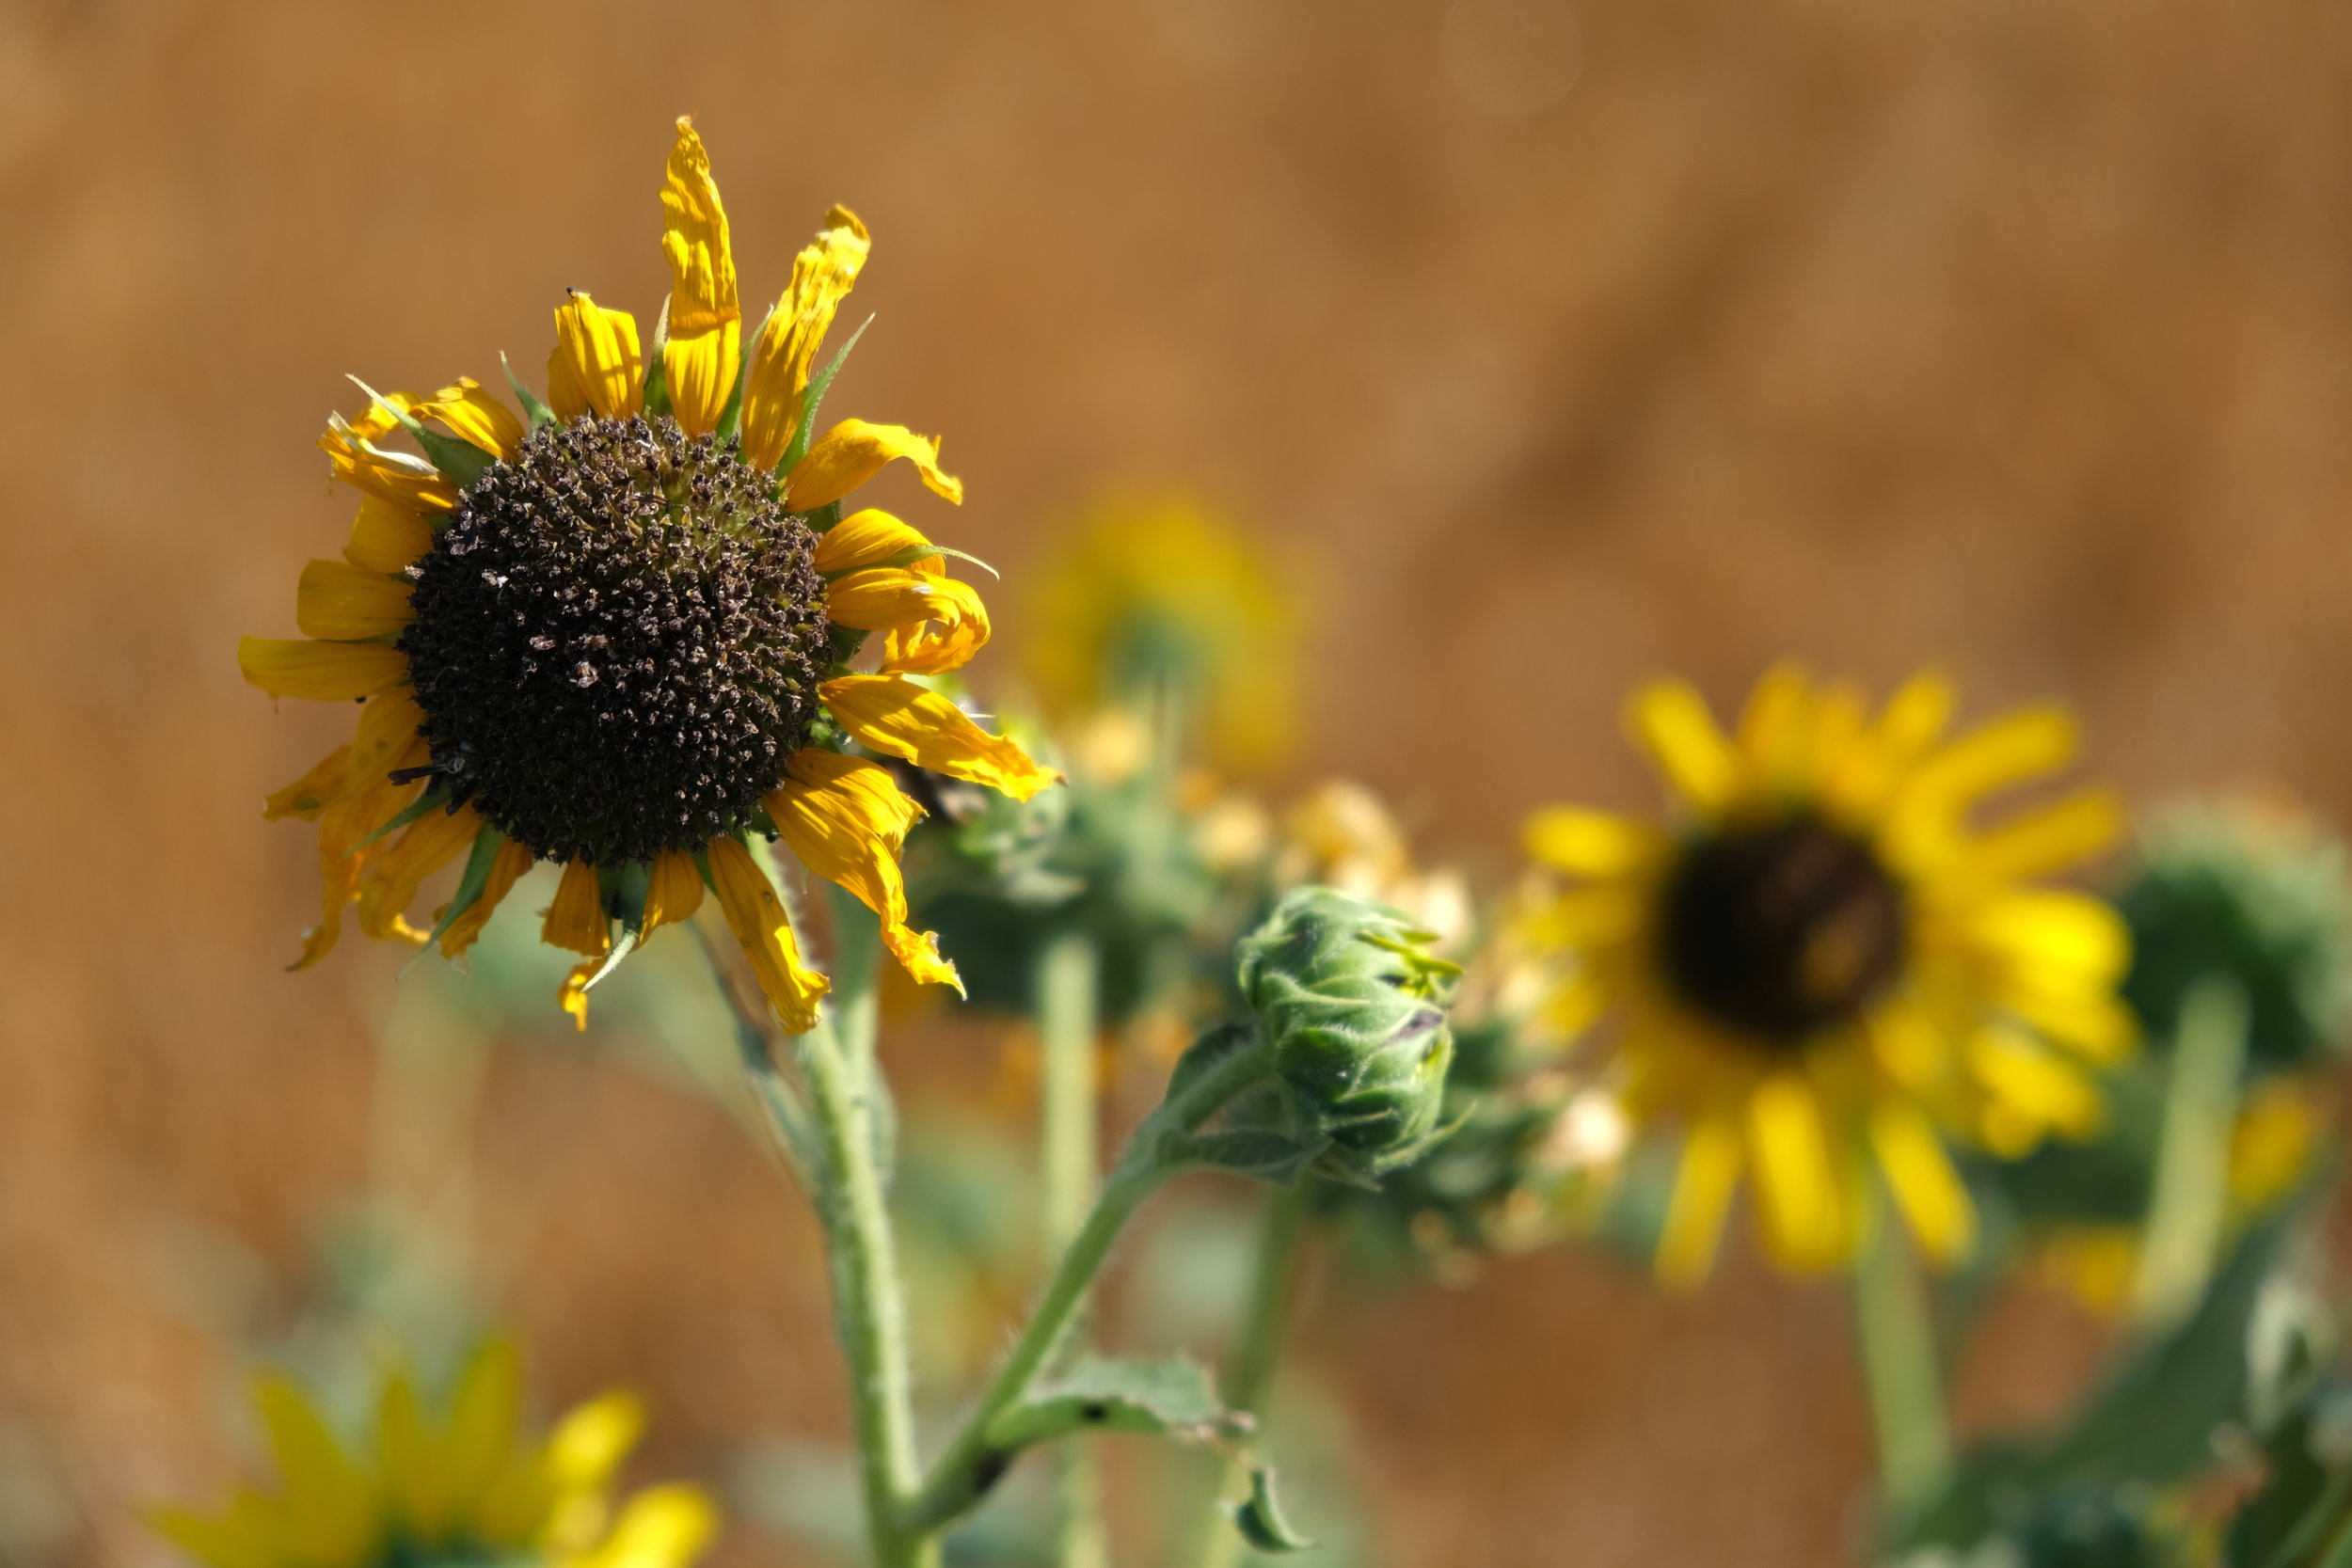 There are very few sunflowers in the Sunflower State